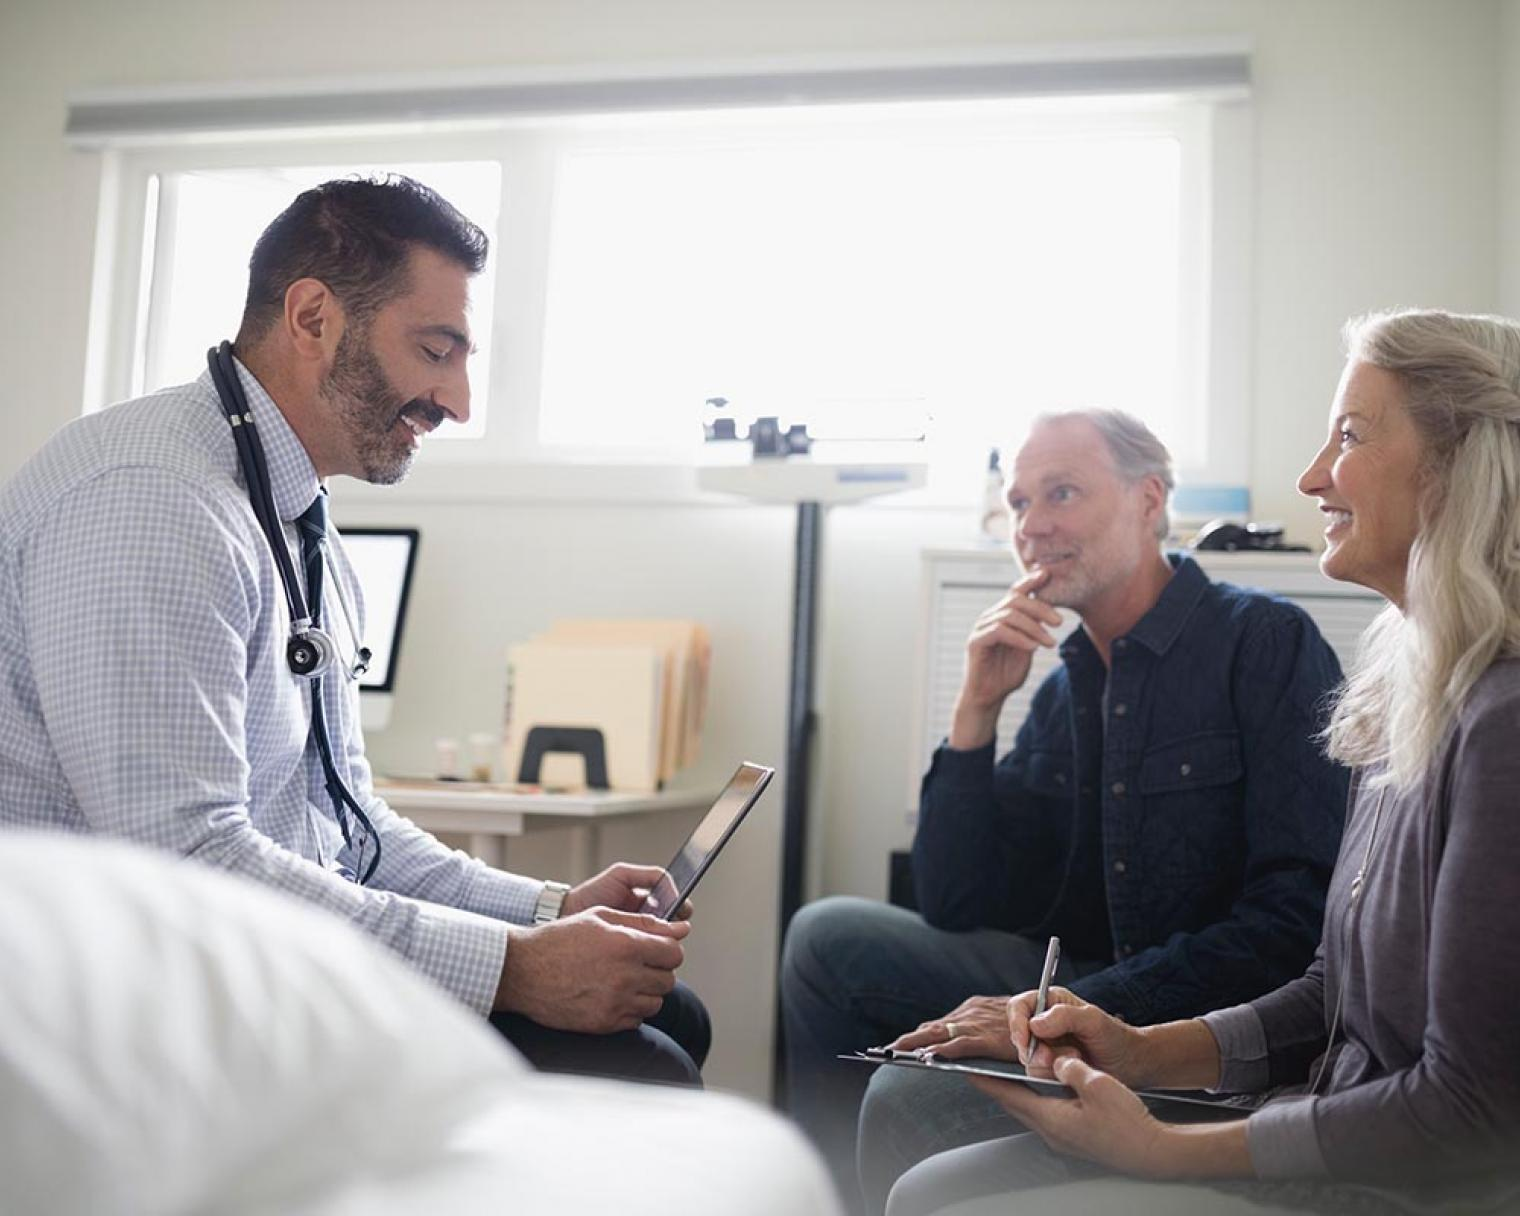 Doctor using iPad in front of patients